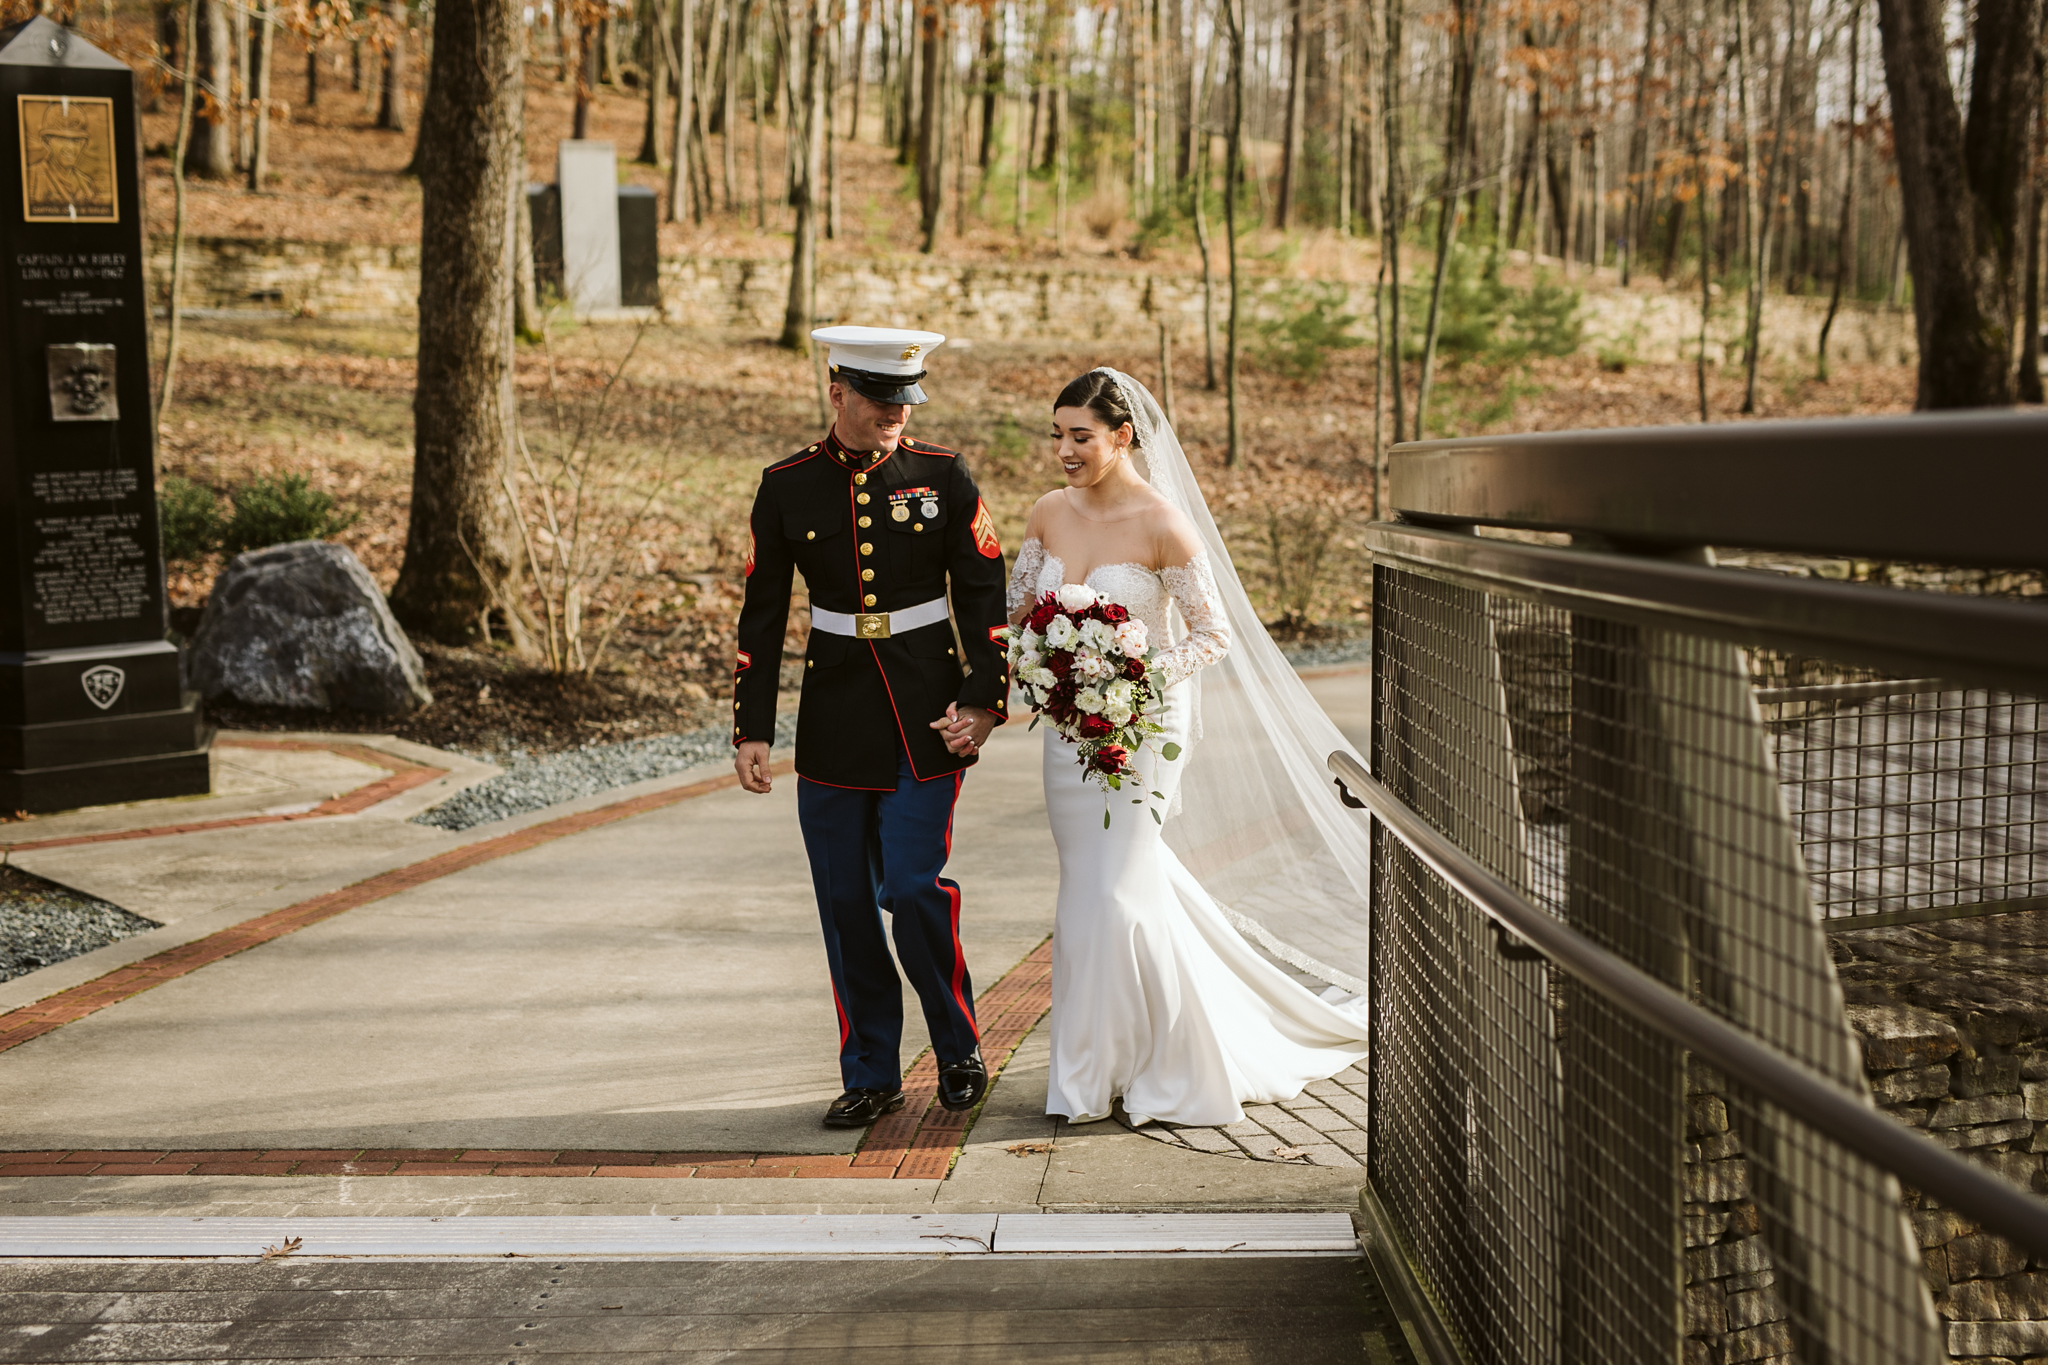 solinsky_wedding_national_museum_of_marine_corp-9.jpg